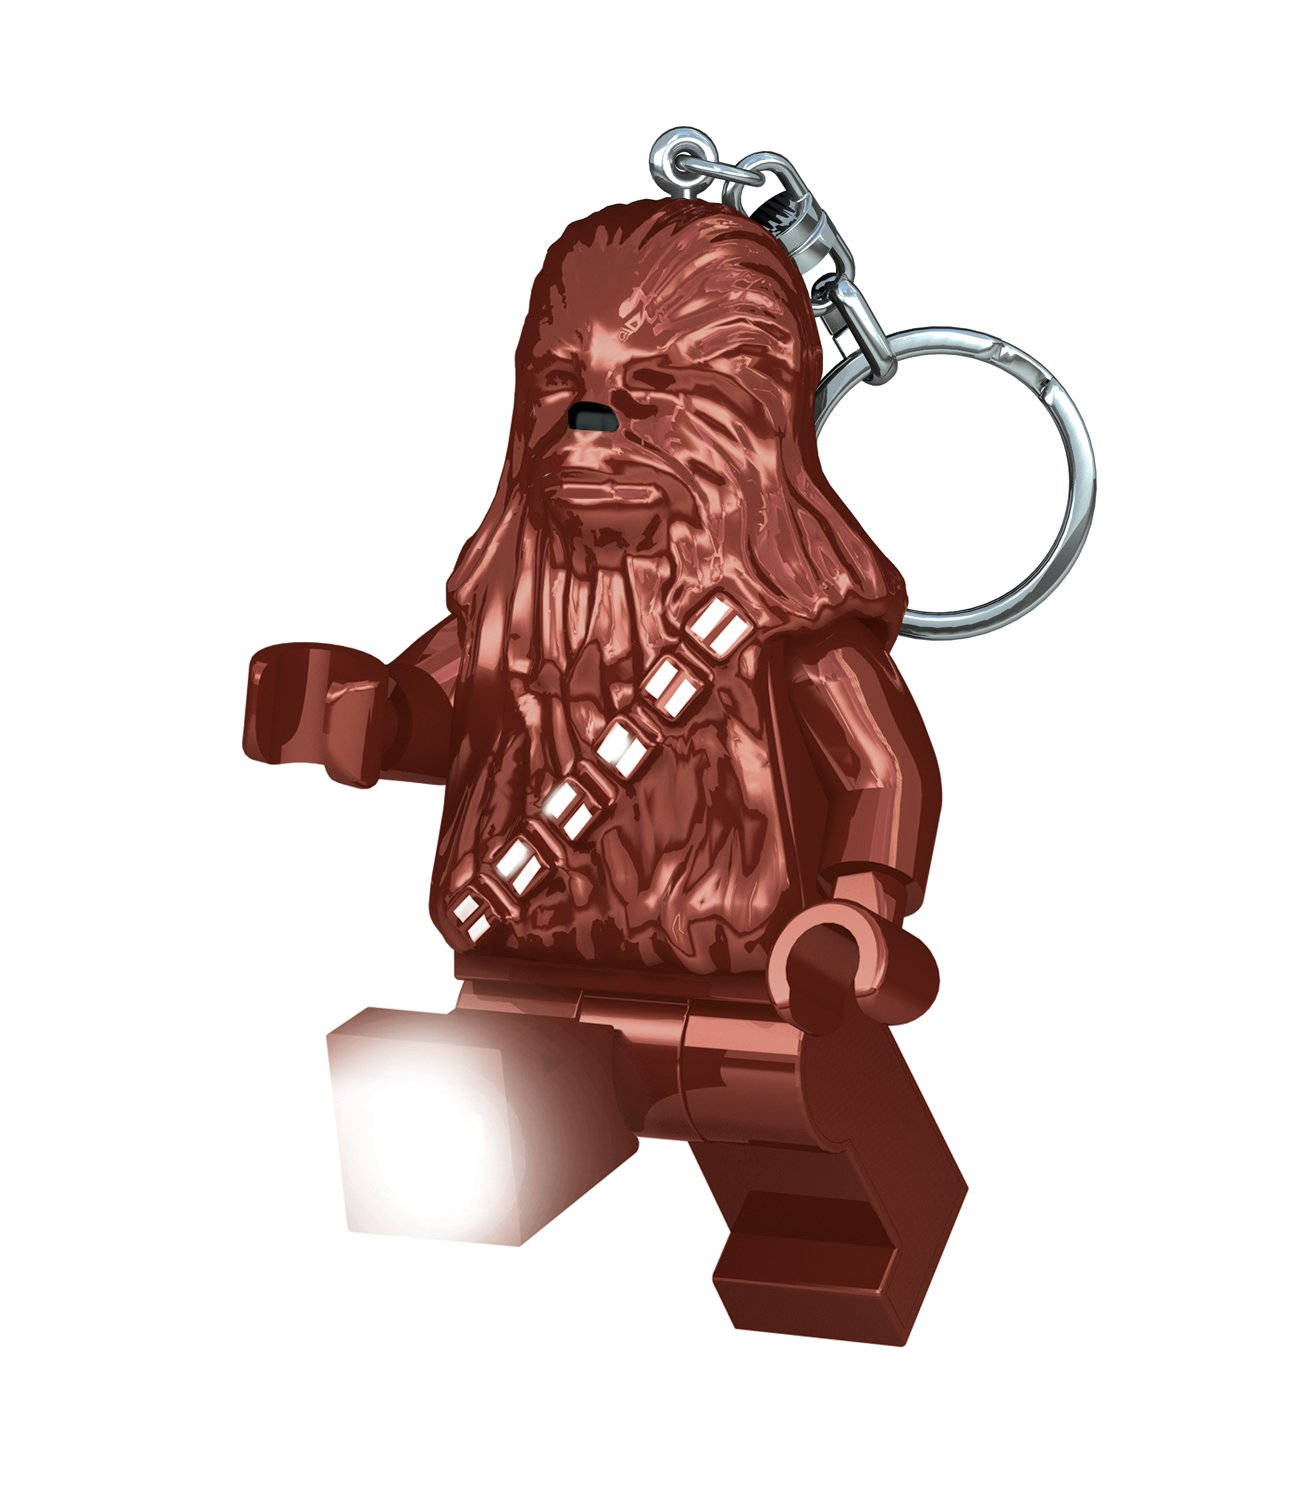 LEGO - Star Wars Chewbacca, mini linterna, 7,6 cm (29003-15)